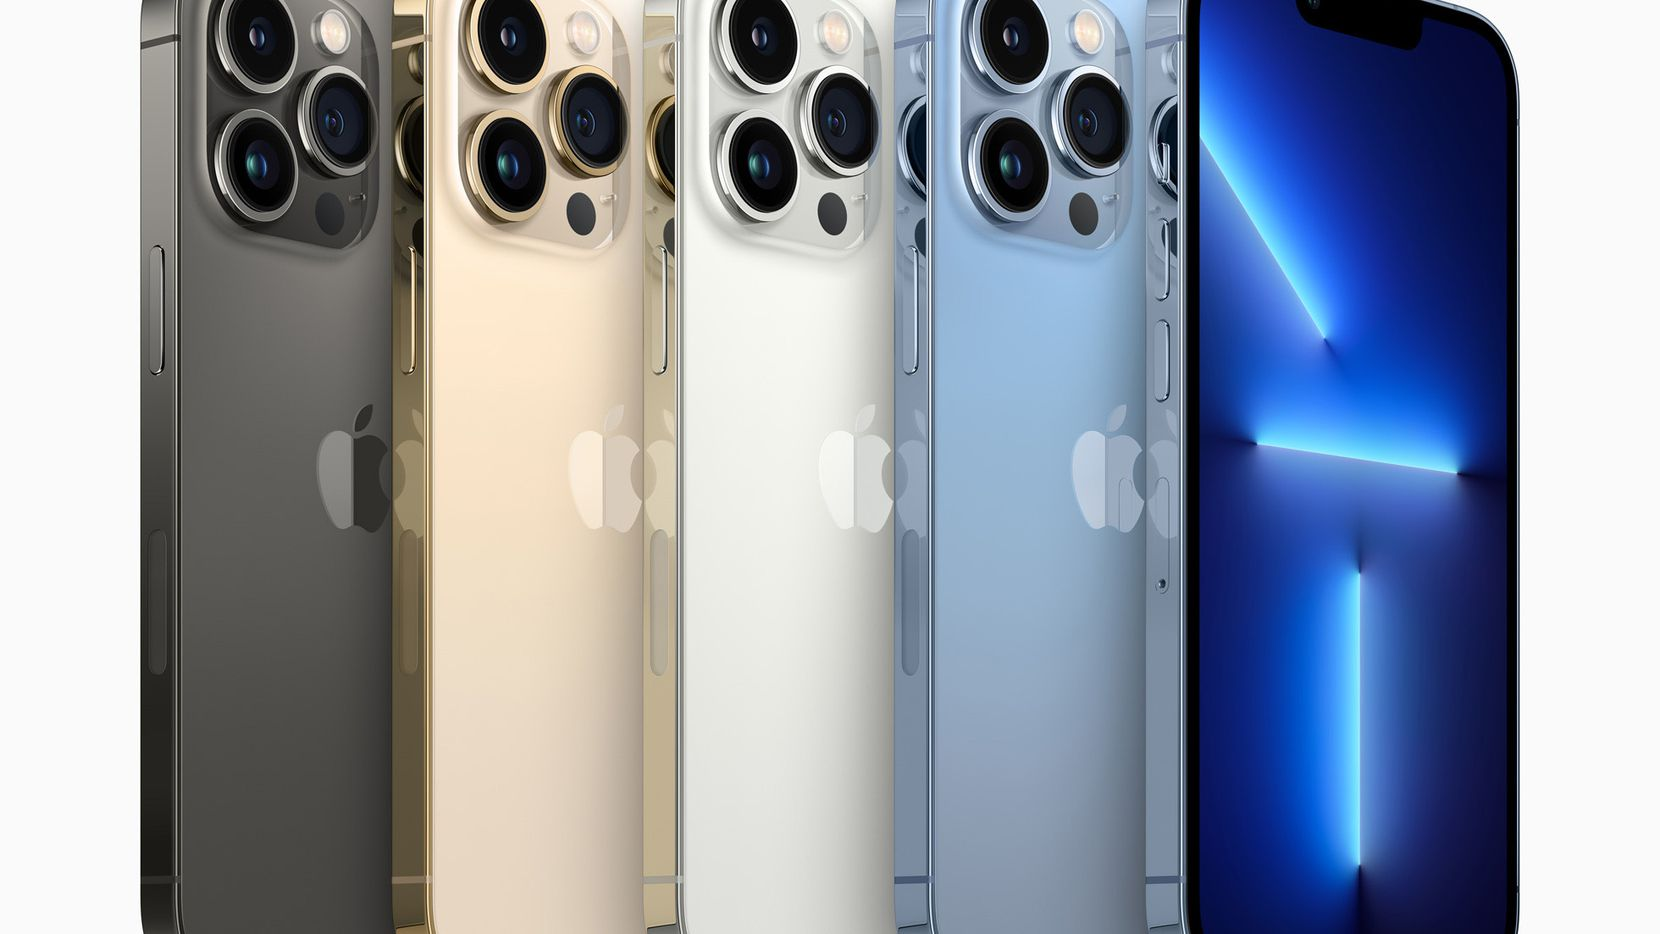 The iPhone 13 Pro Max comes in four colors.